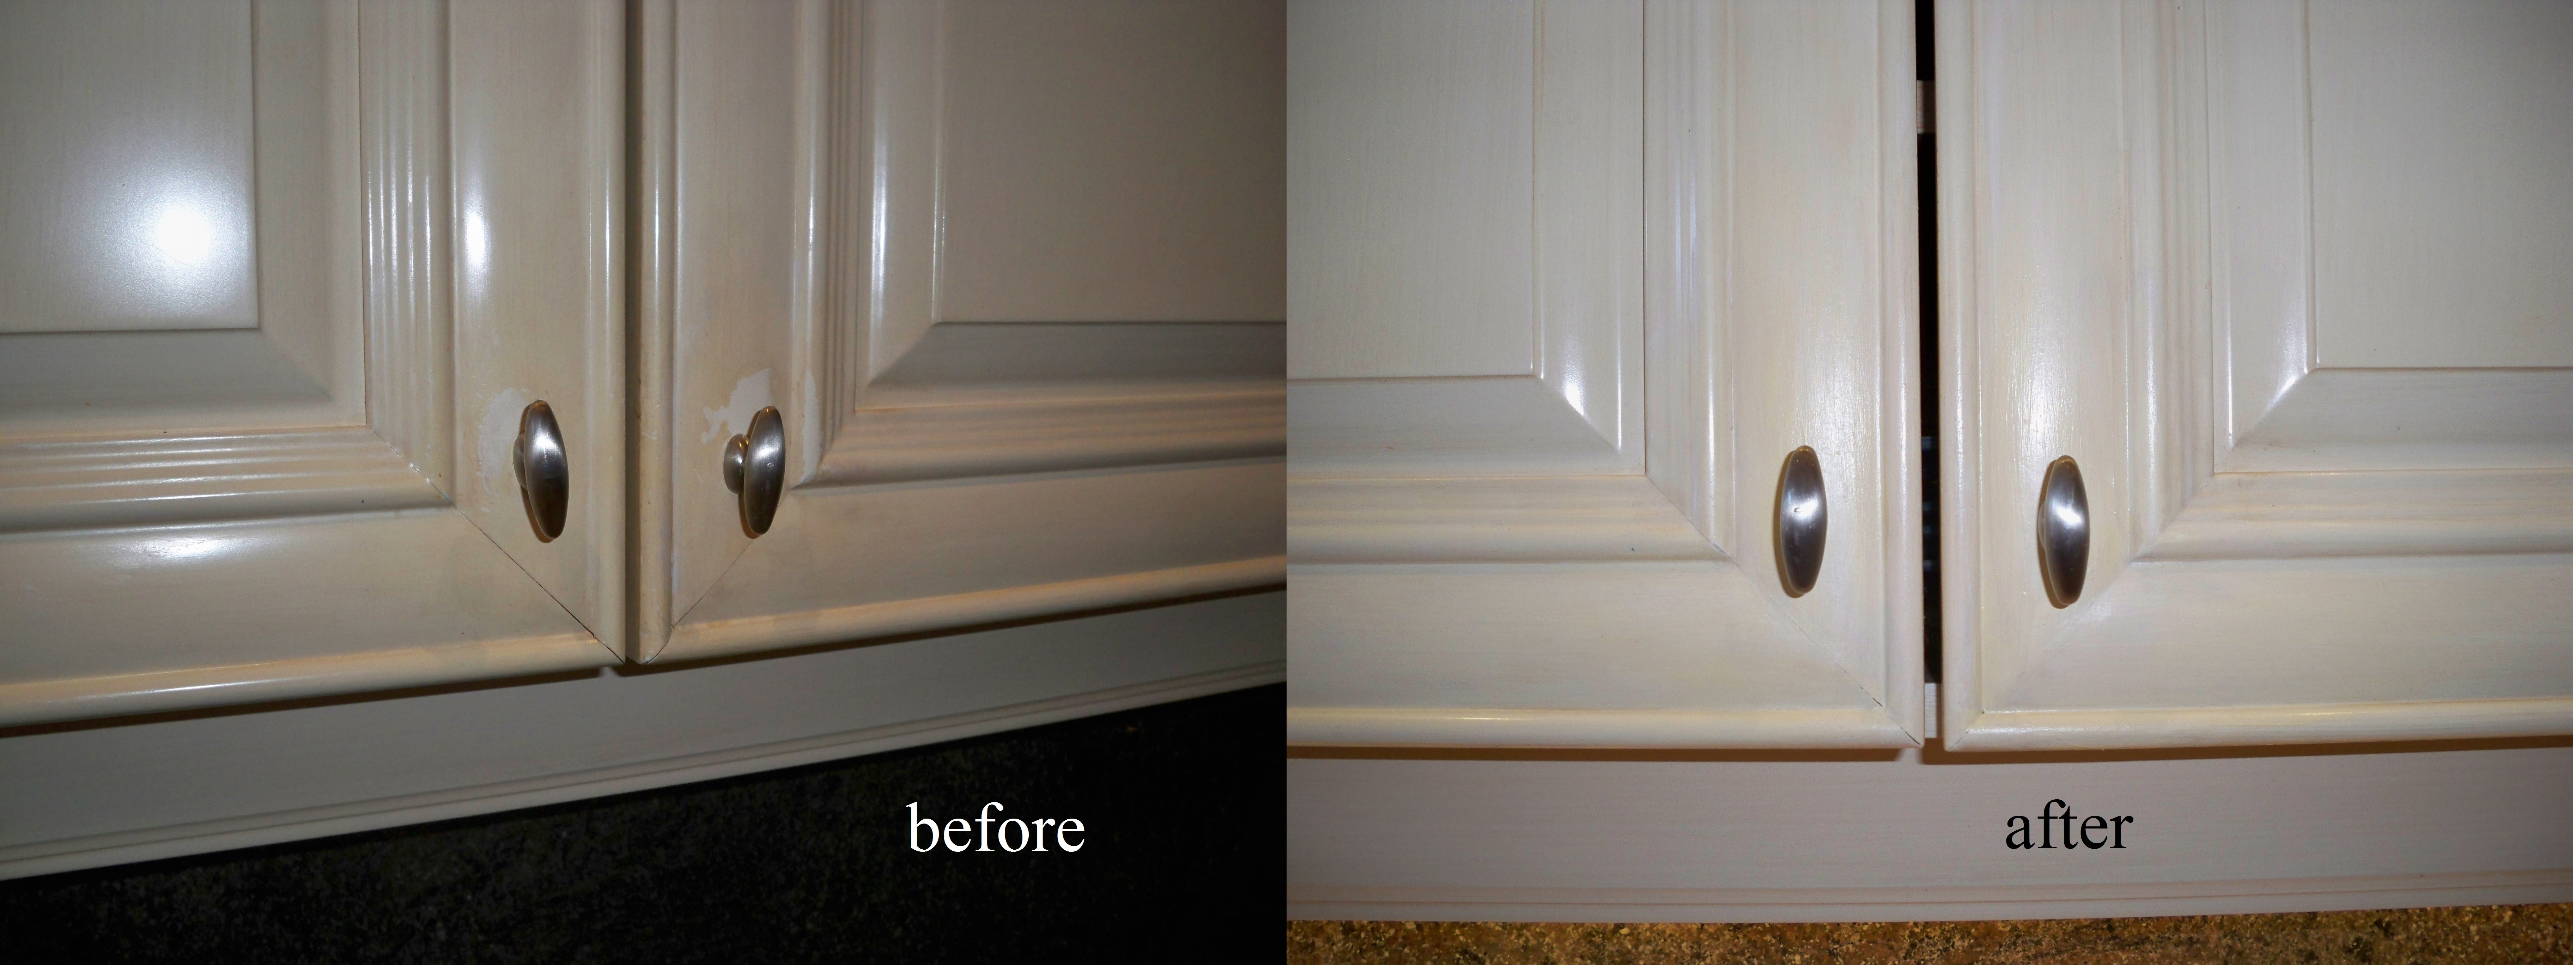 Murals By Marg Kitchen Cabinet repairs before and after.jpg